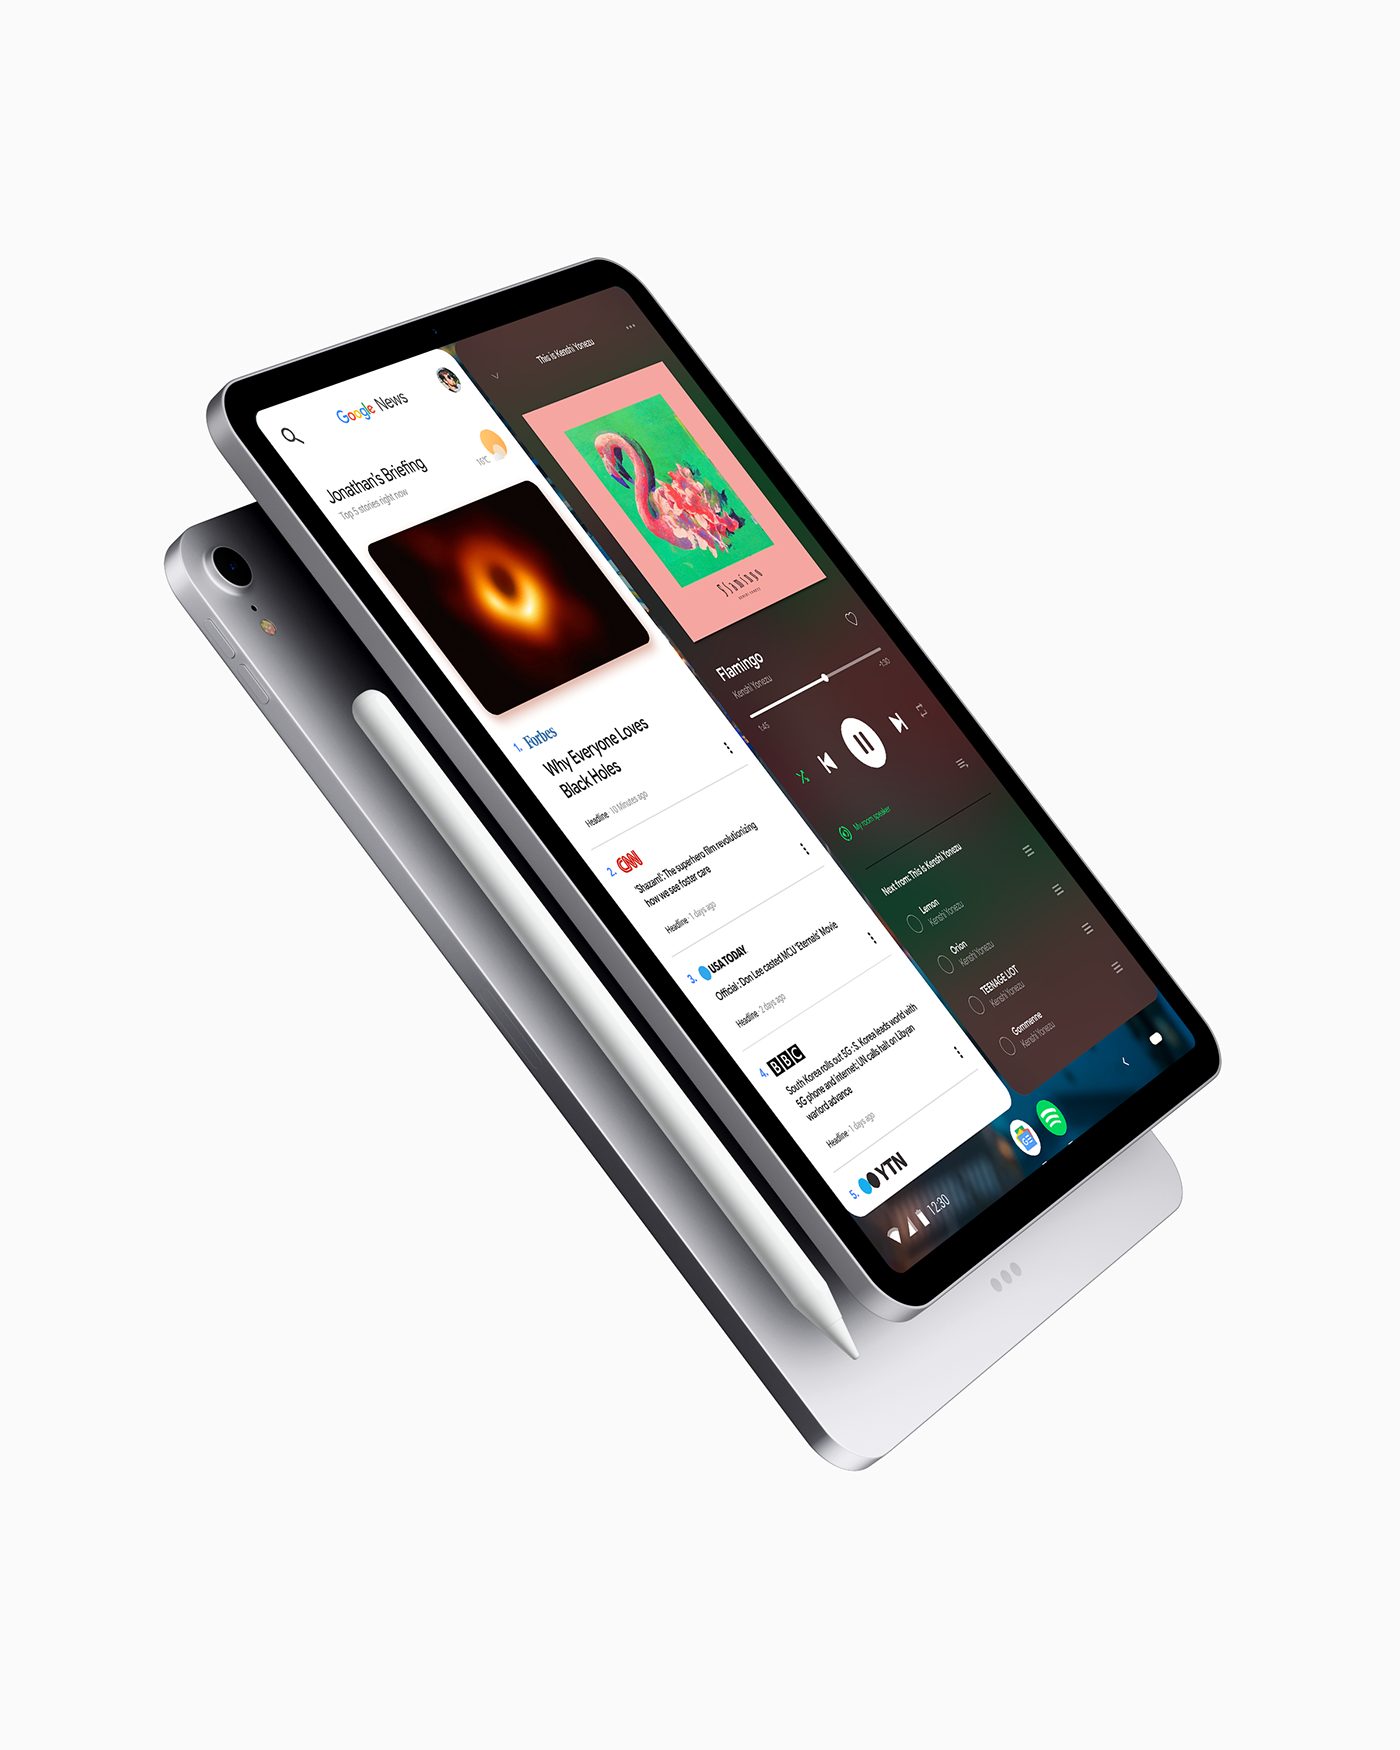 android tablet Os meterial design ios windows system ui